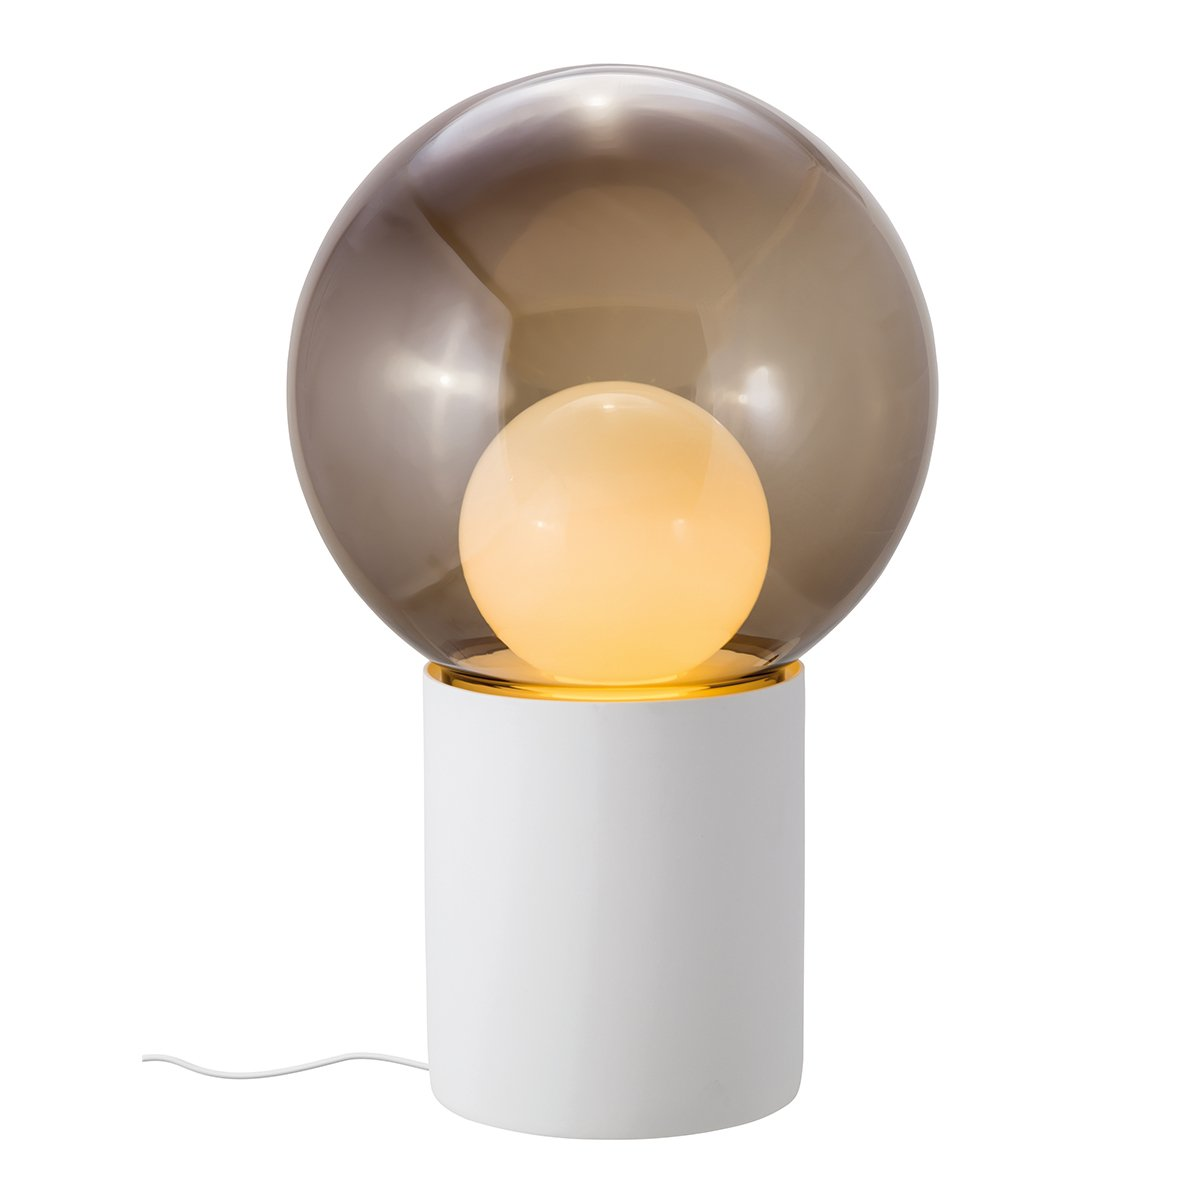 Pulpo Boule High Vloerlamp - Wit - Smoke Grey - Opaal Wit